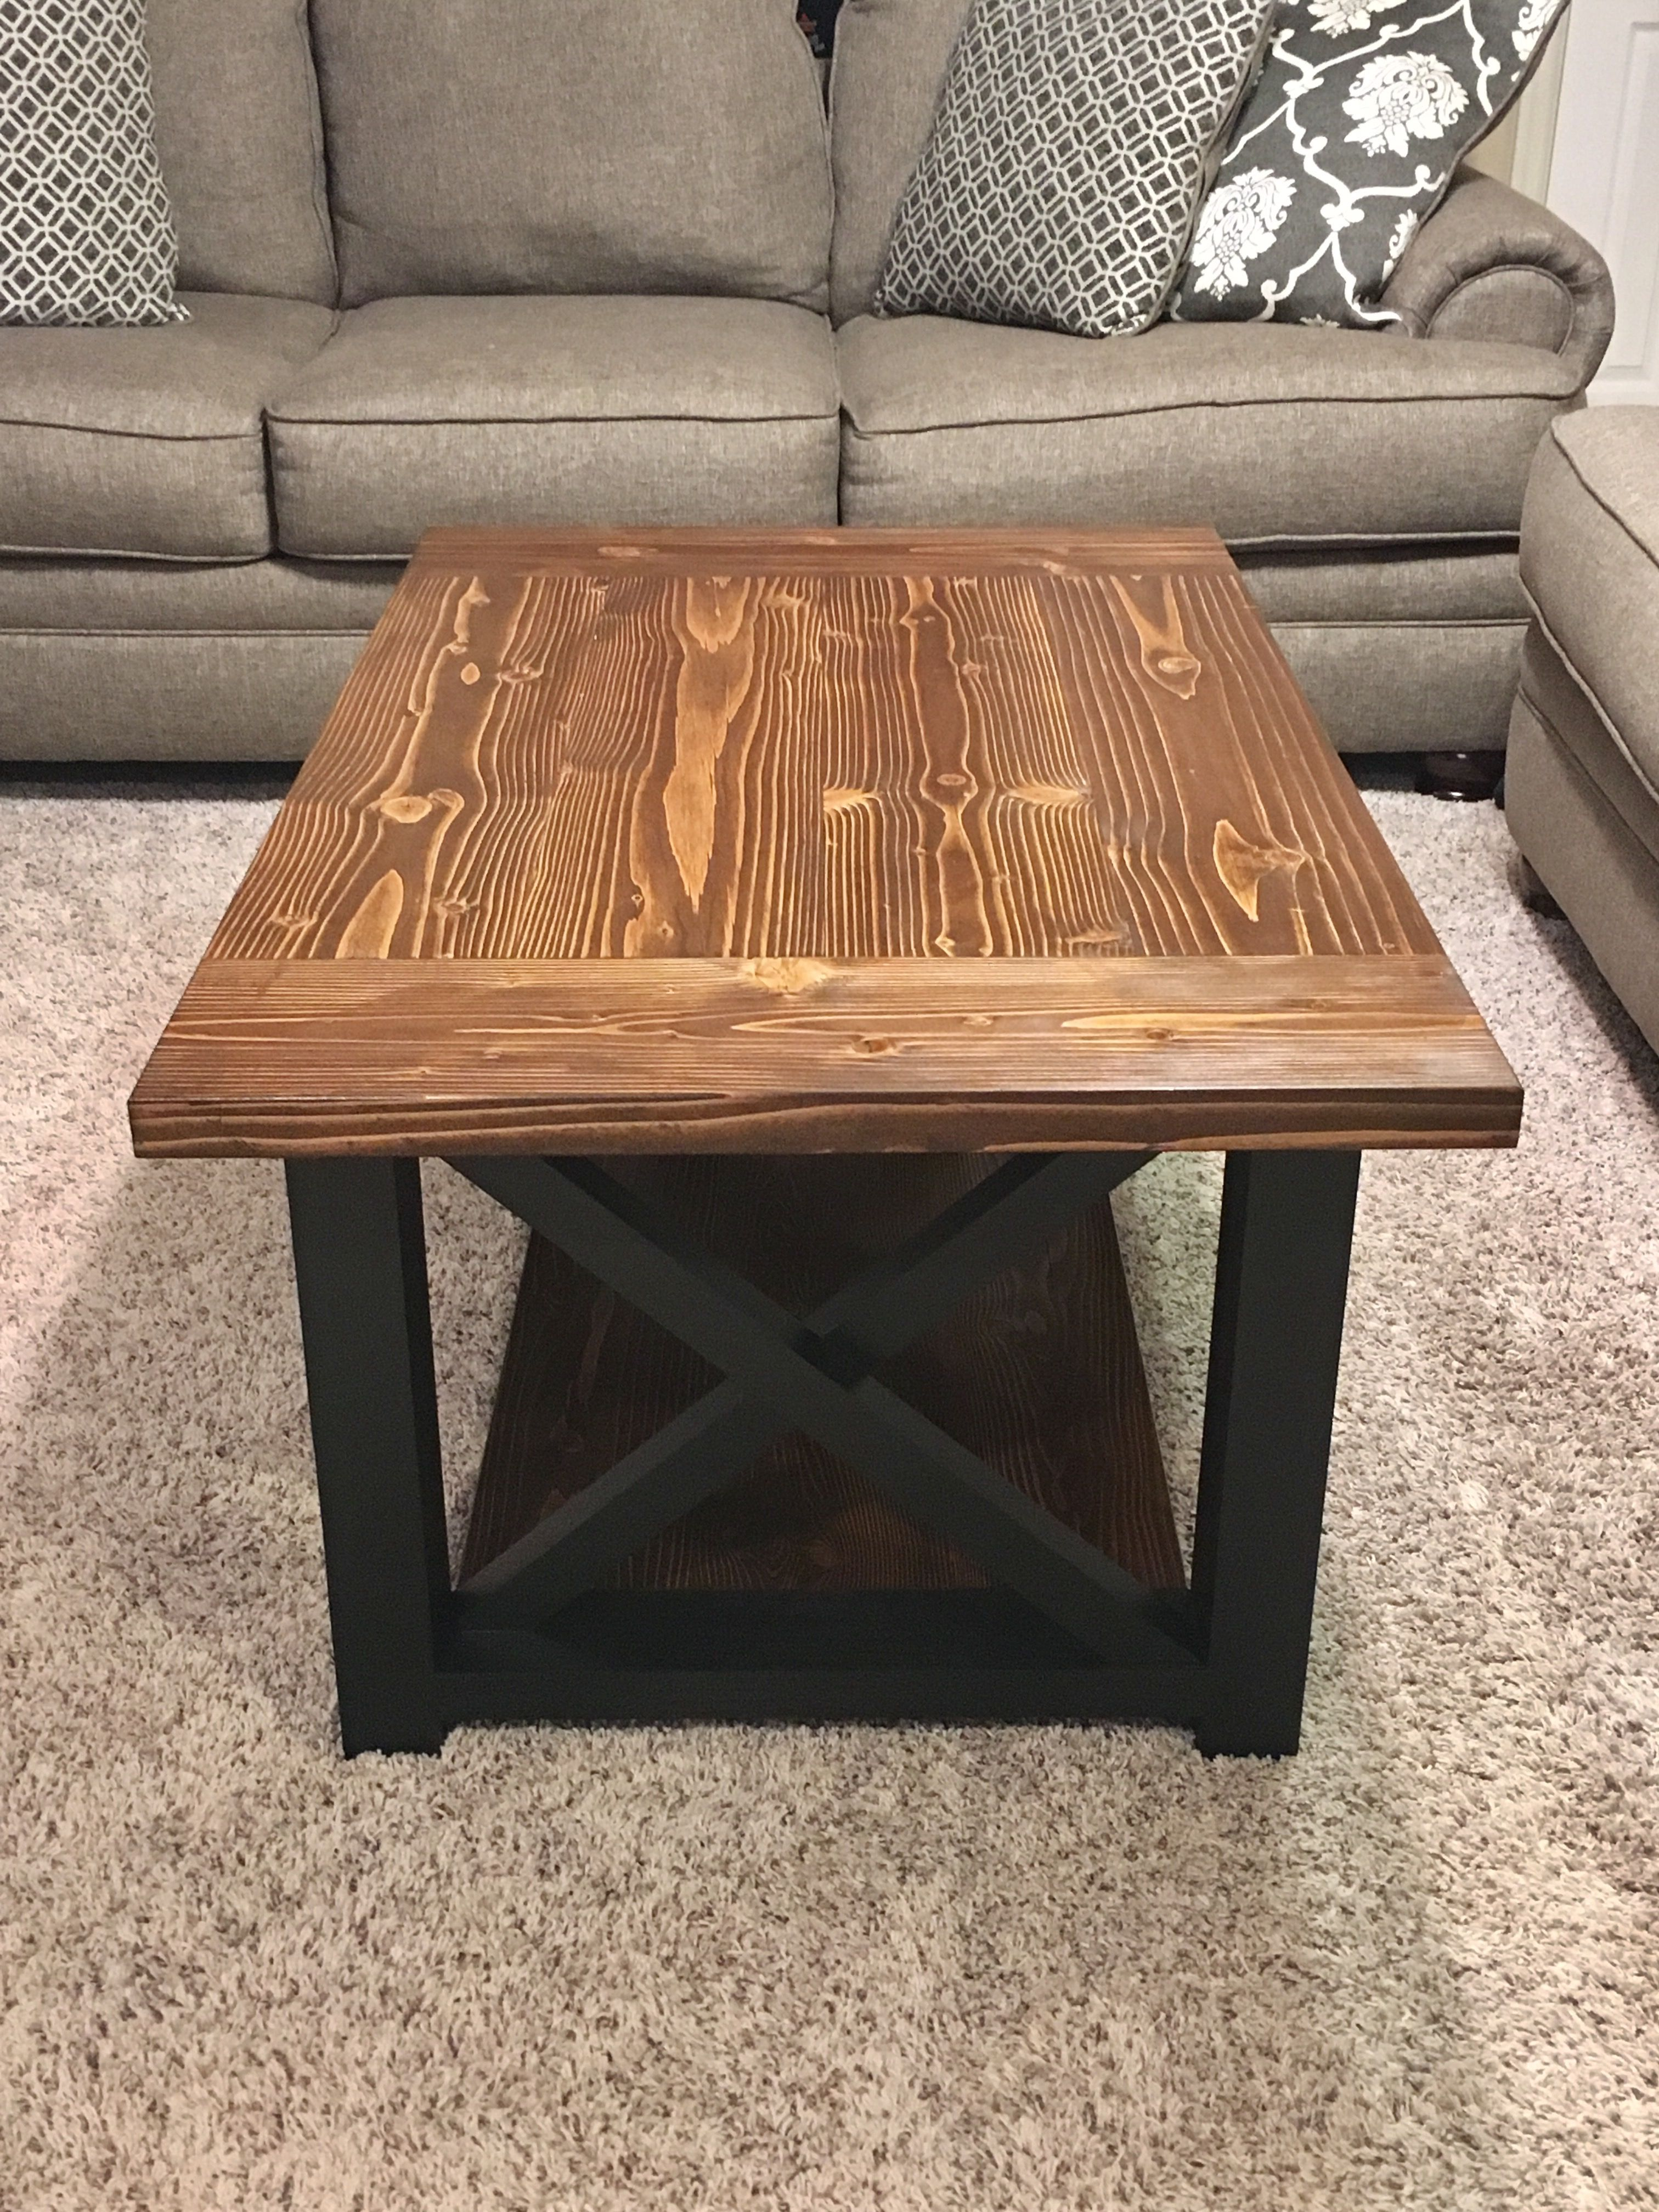 Superieur X Frame Coffee Table #farmhouse #rustic #coffeetable #madeinmichigan  #veteranowned #